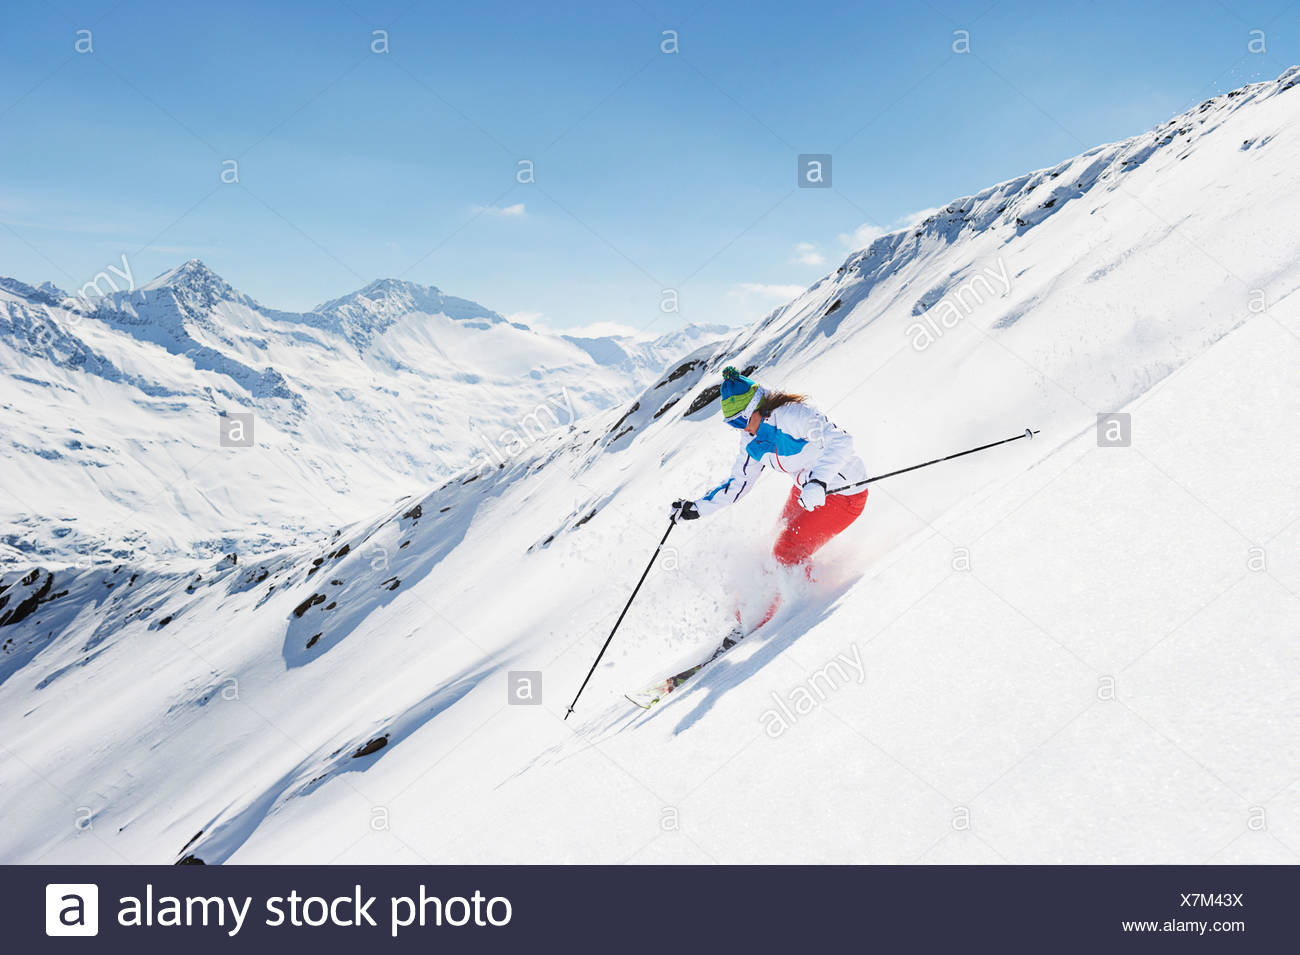 Female skier in action - Stock Image